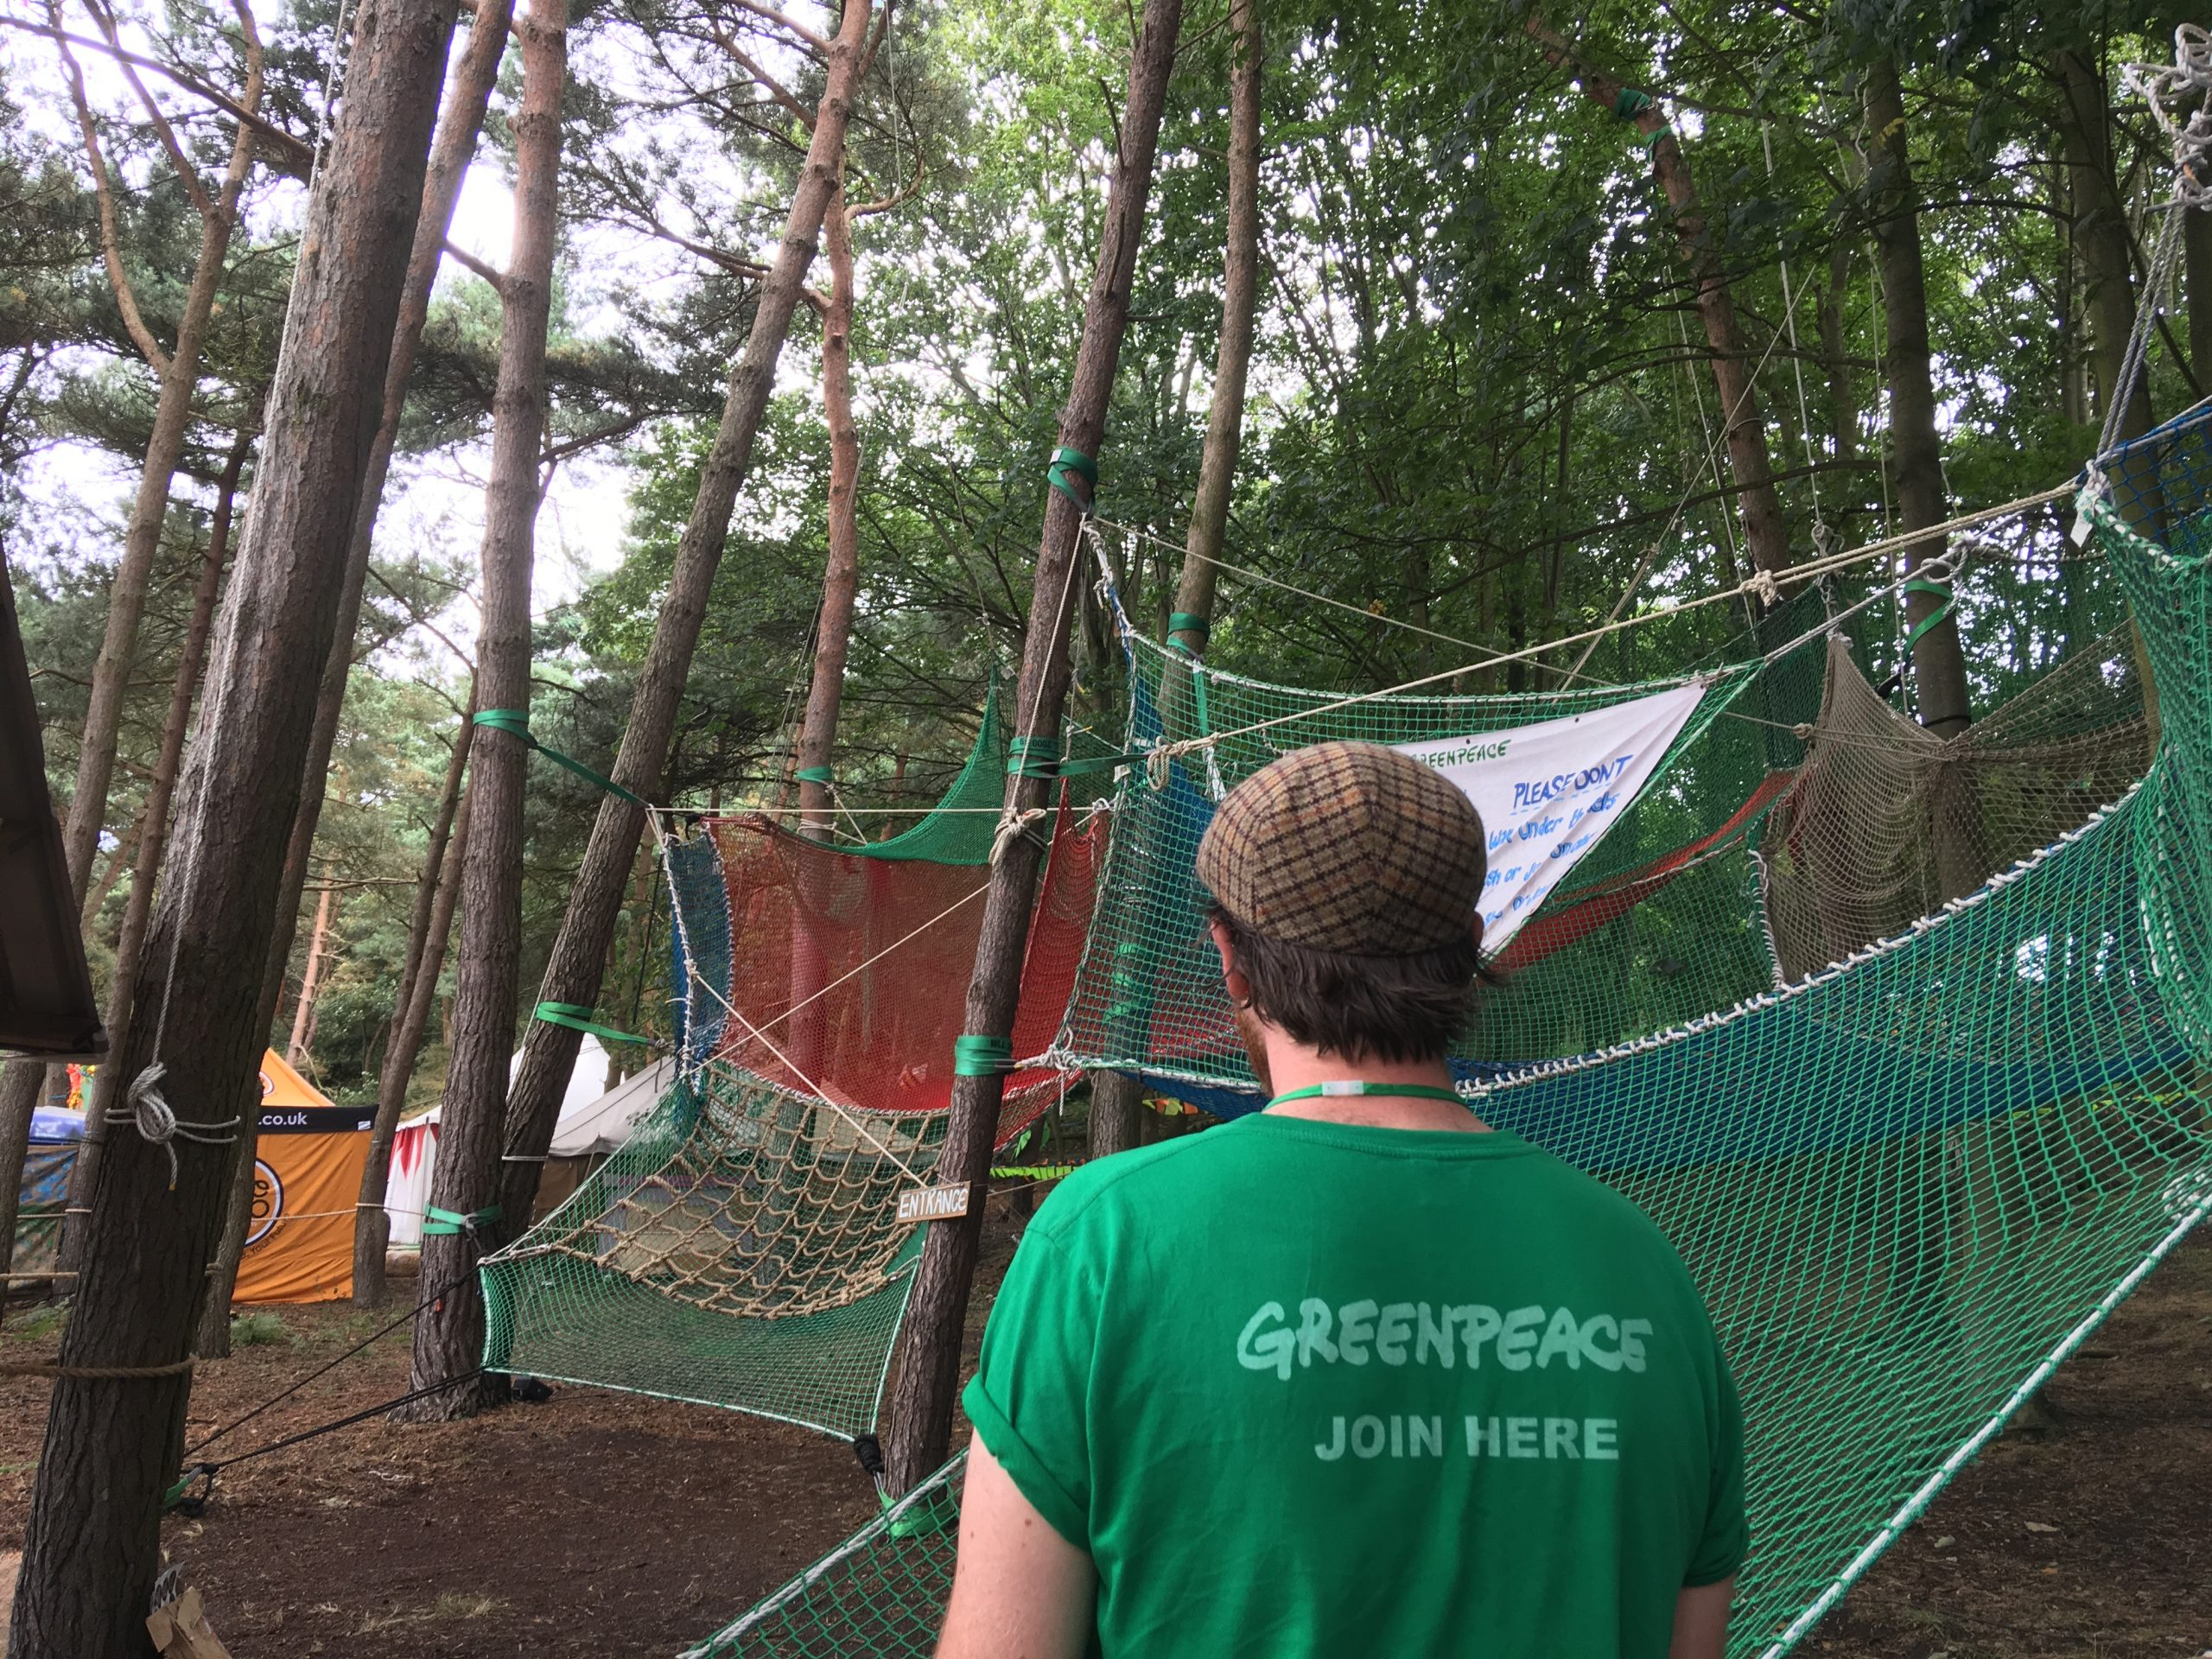 A Greenpeace volunteer stands in front of an obstacle course made of nets attached to trees